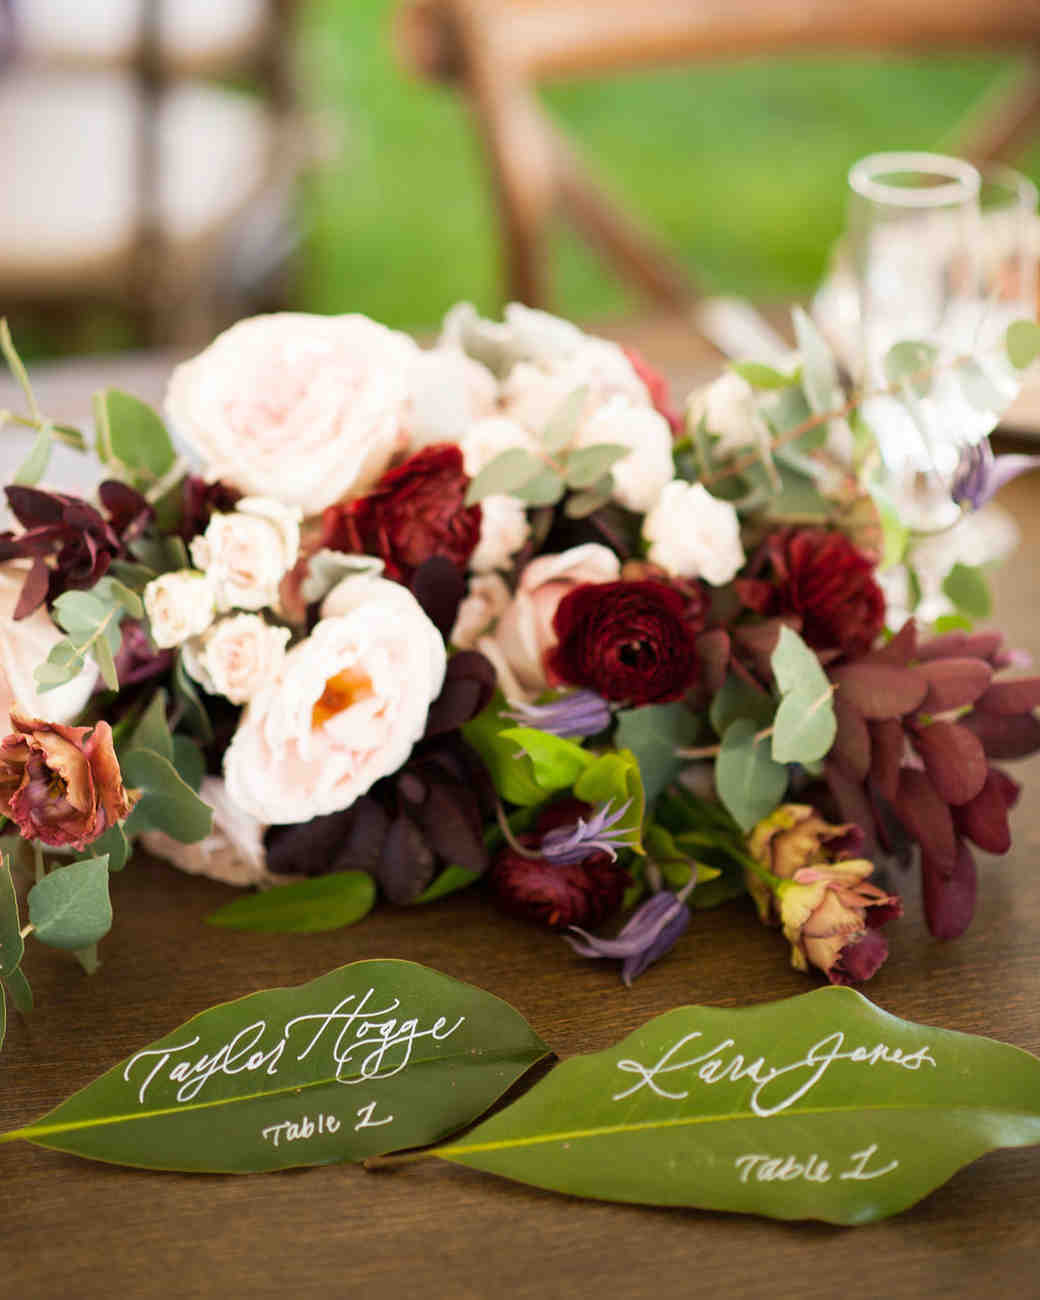 magnolia leave place cards with white hand-calligraphy